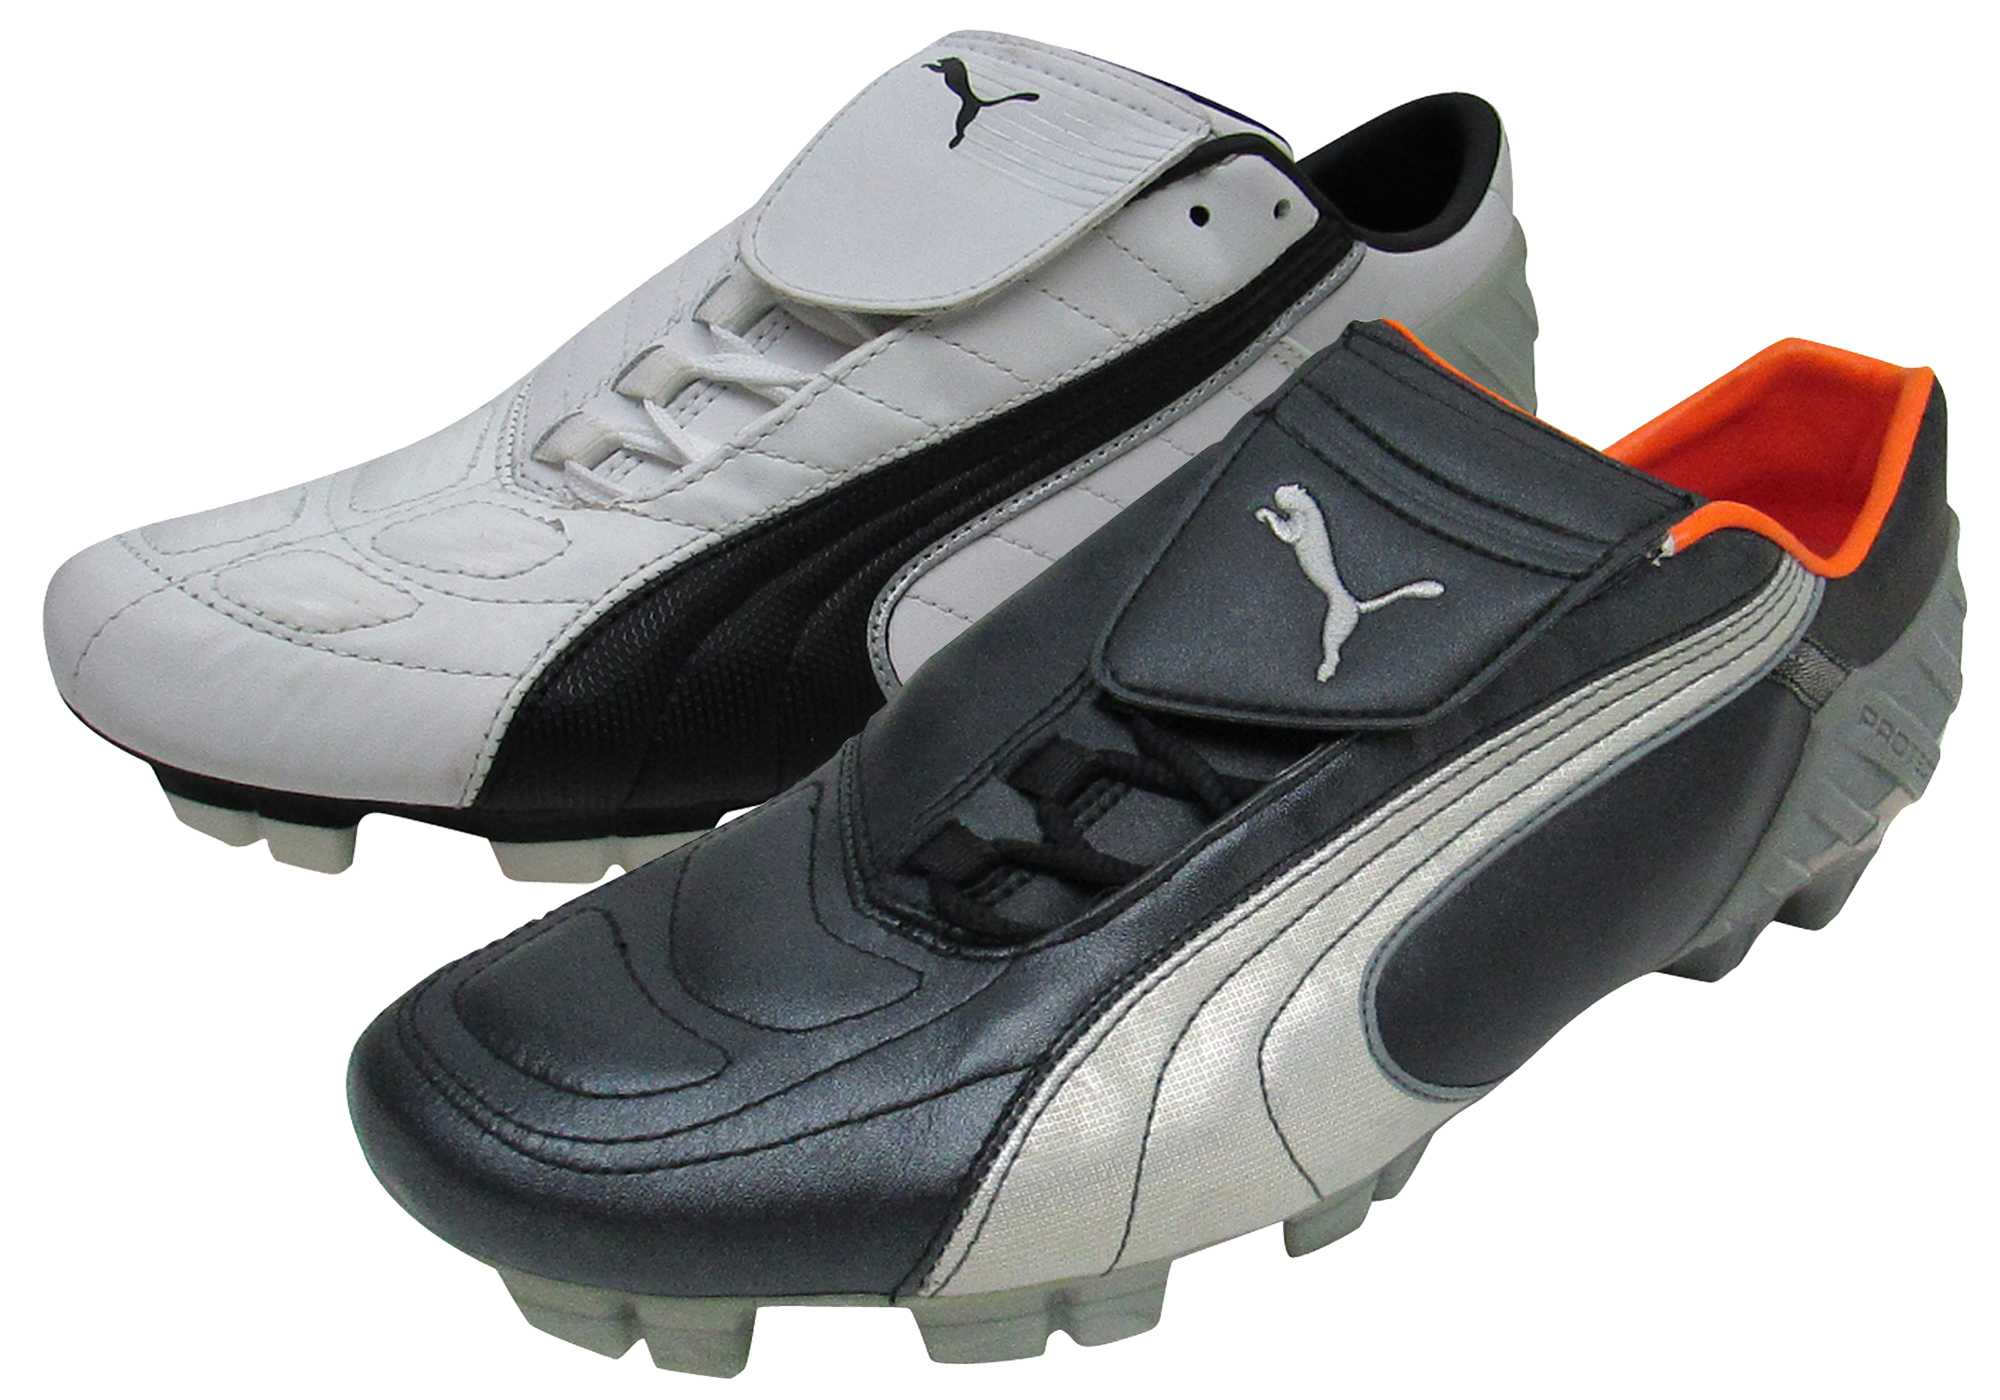 Mens Puma V-Kat GCi FG Football Boots Firm Ground Soccer Cleats Boot Leather 83af3891e